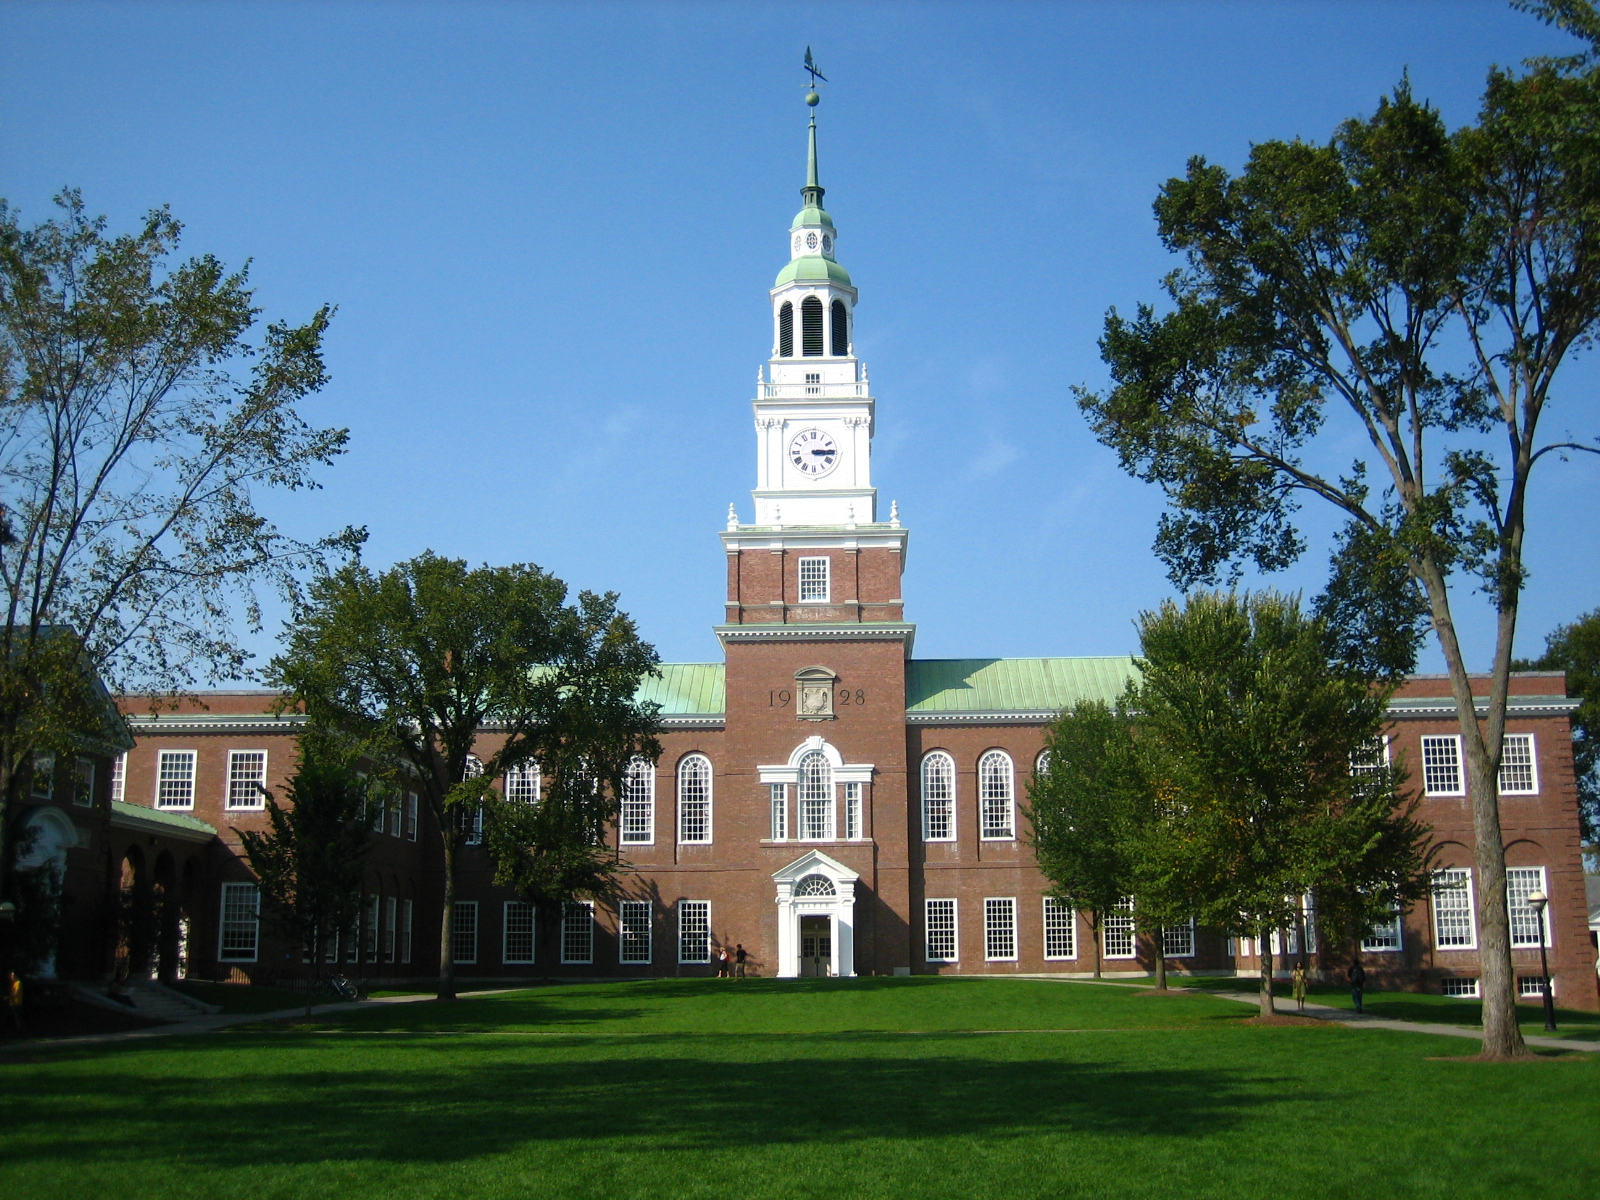 dartmouth-green-ve30nu.jpg